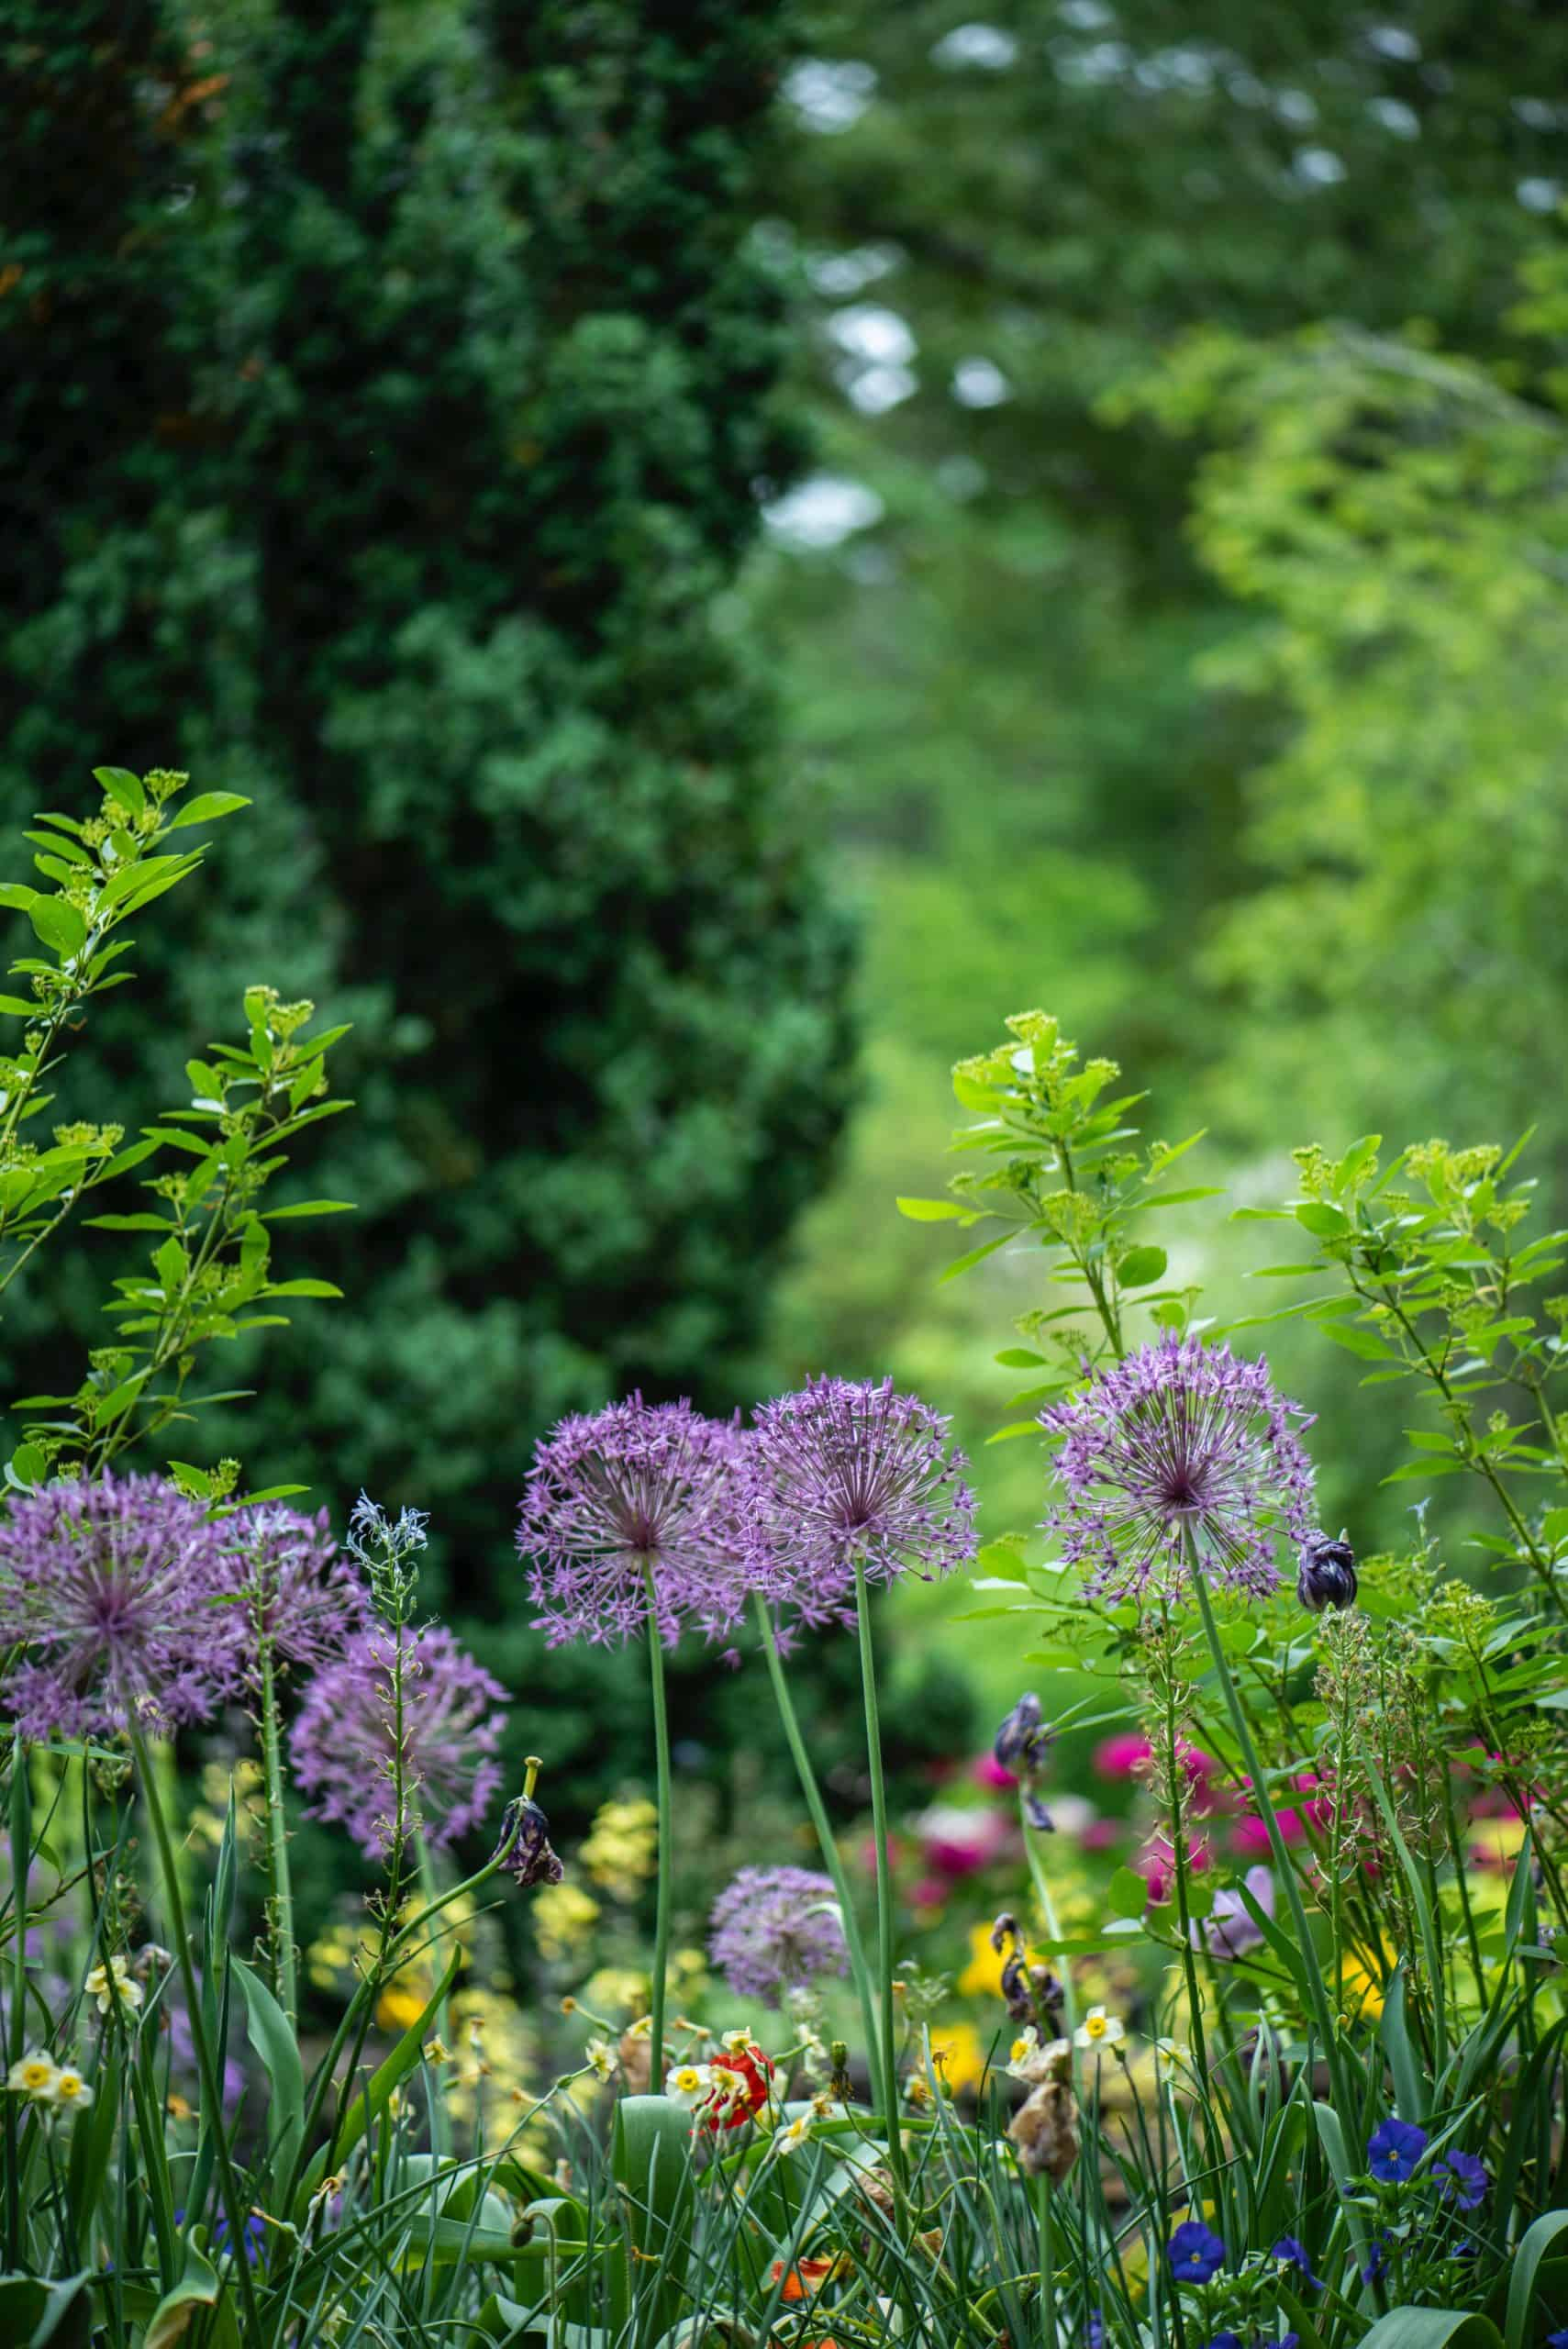 The Benefits Of Garden That We Are Not Aware Of